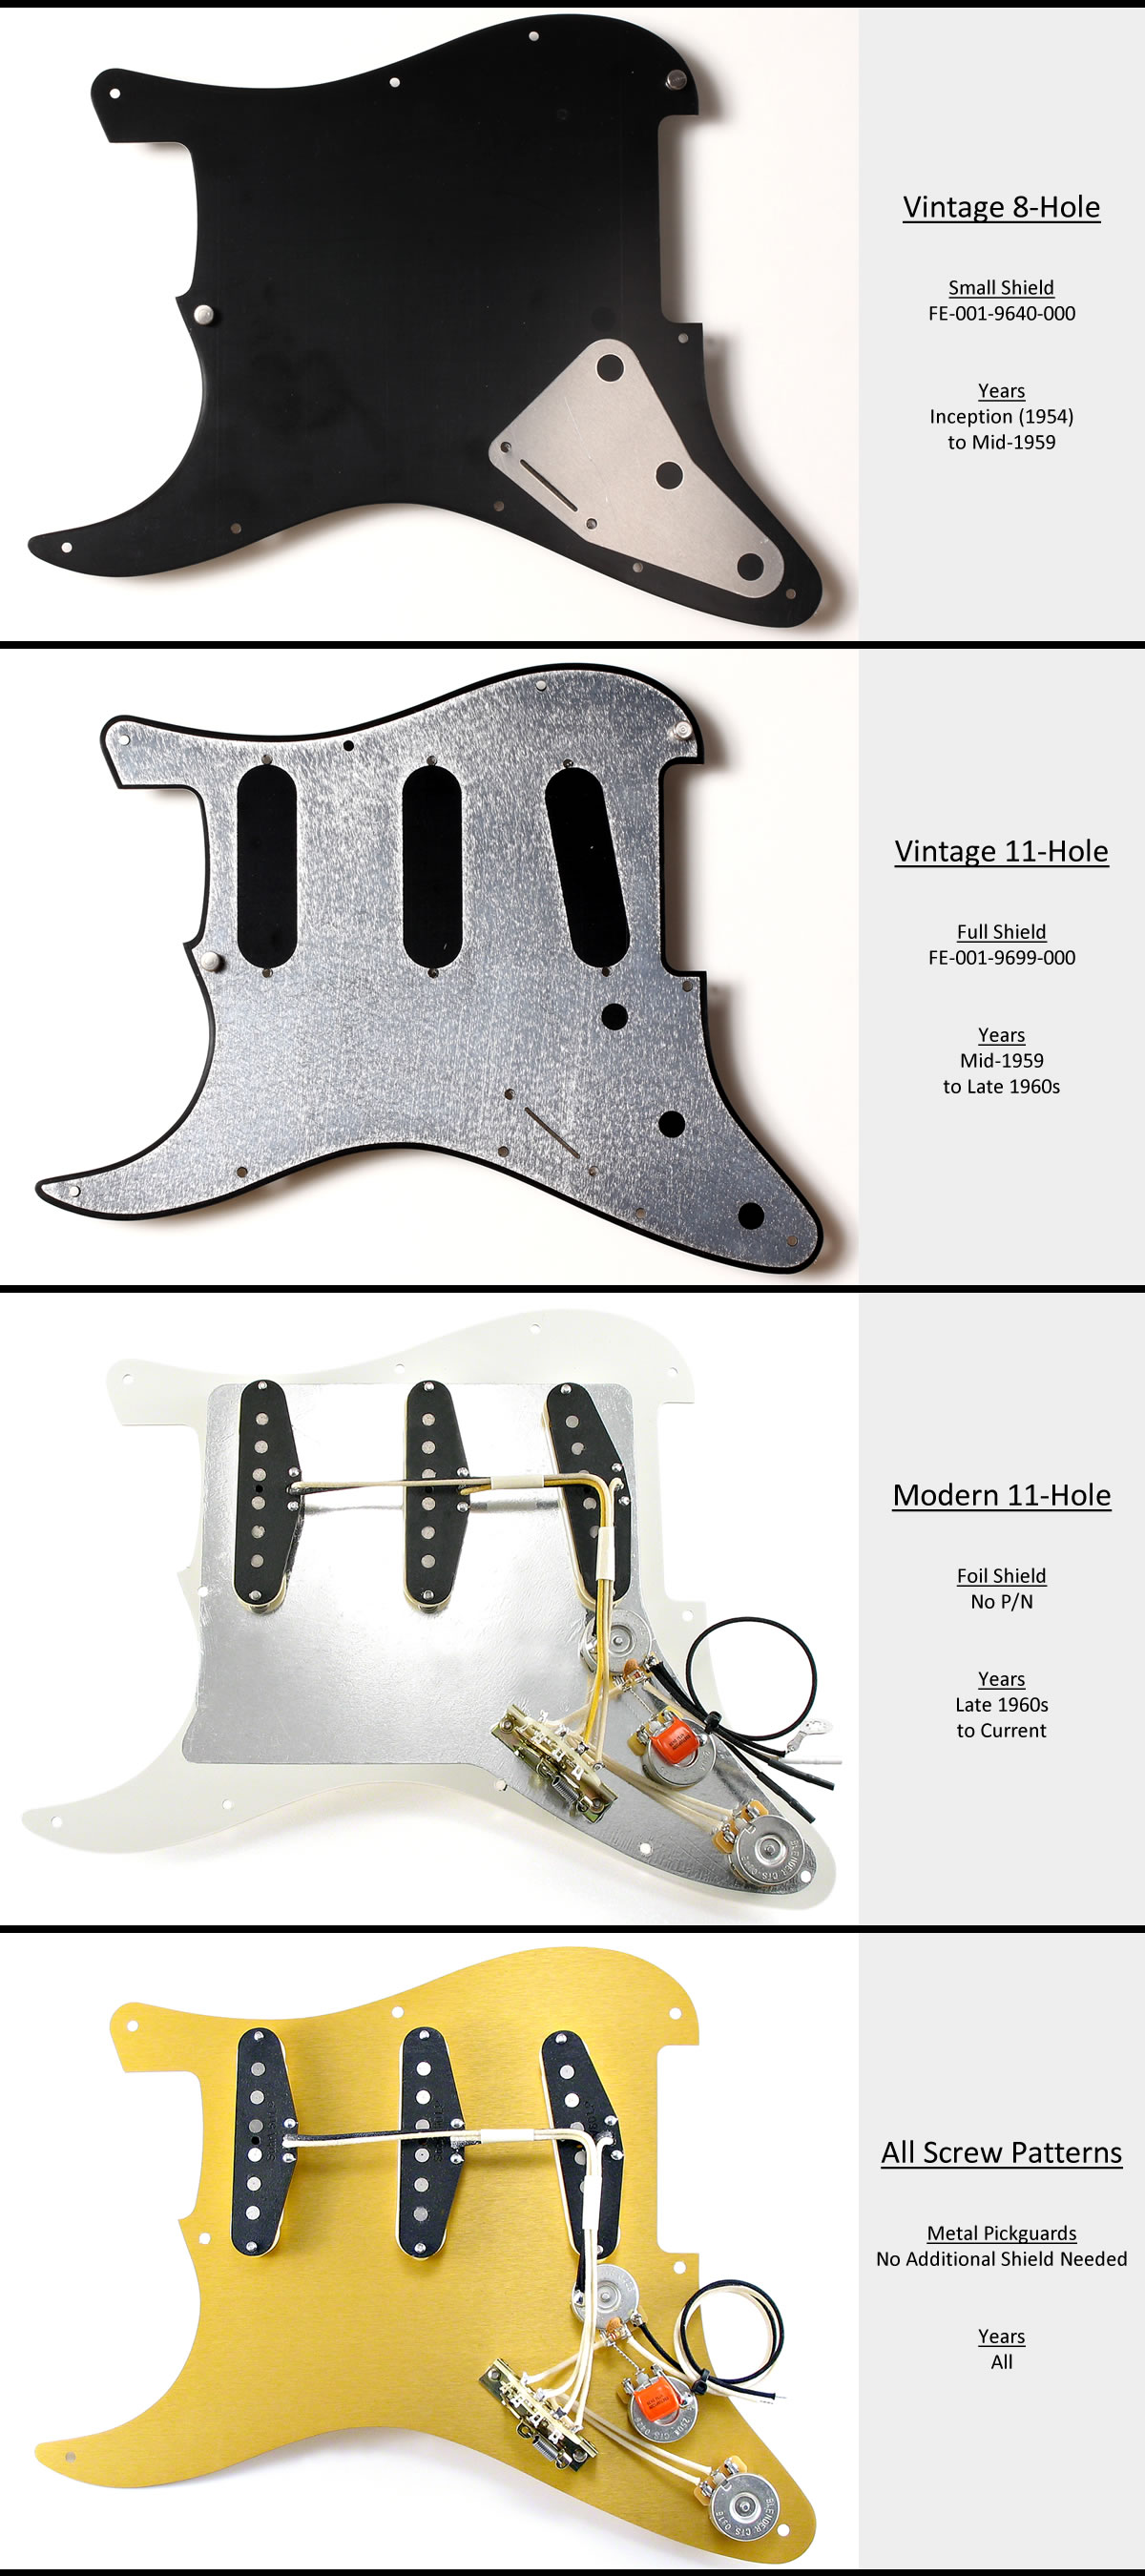 toneshapers about fender strat pickguards fender pickguard shielding